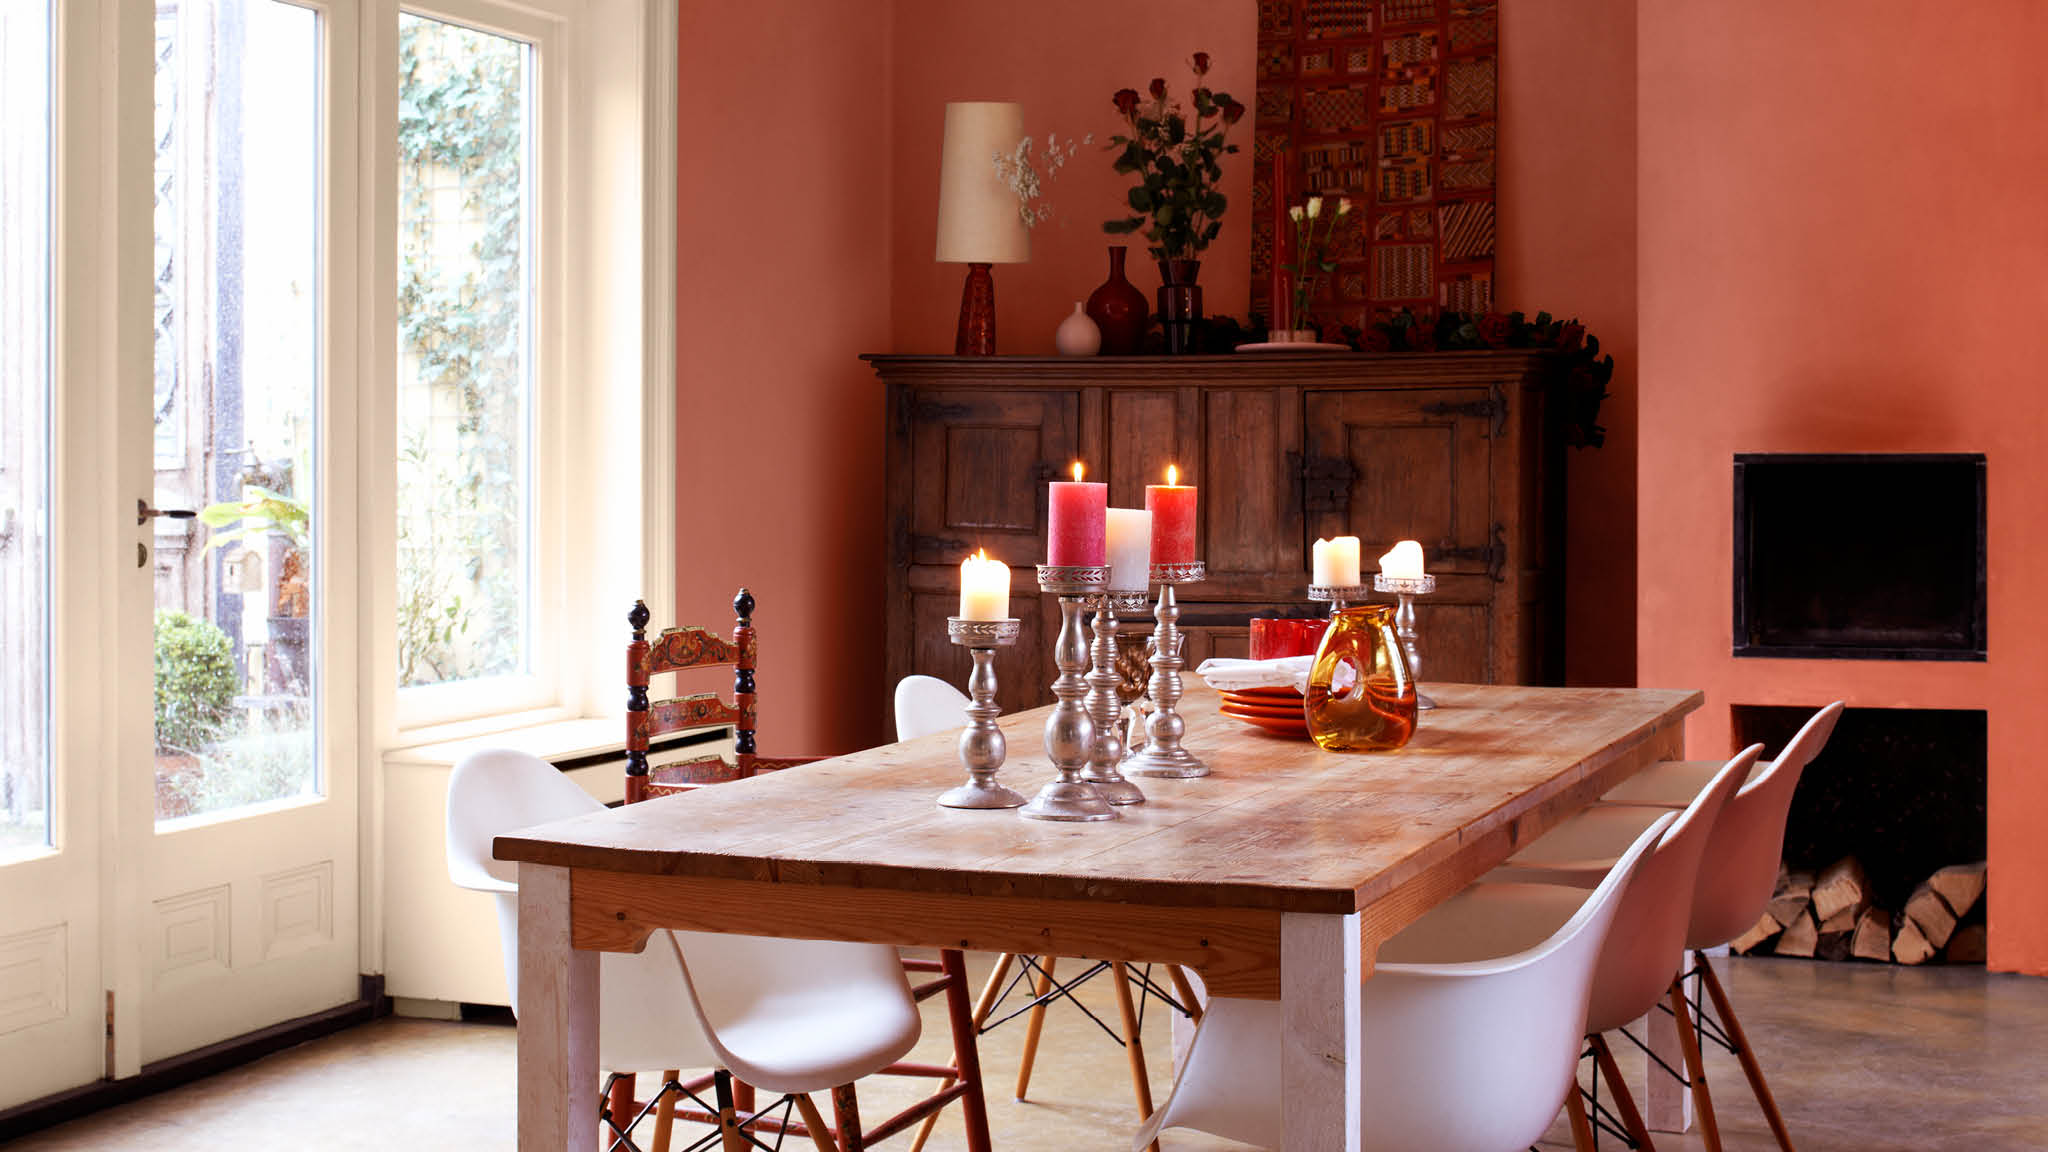 Vibrant coral with hints of orange is an uplifting and convivial shade that will energise your dining room without overpowering it.